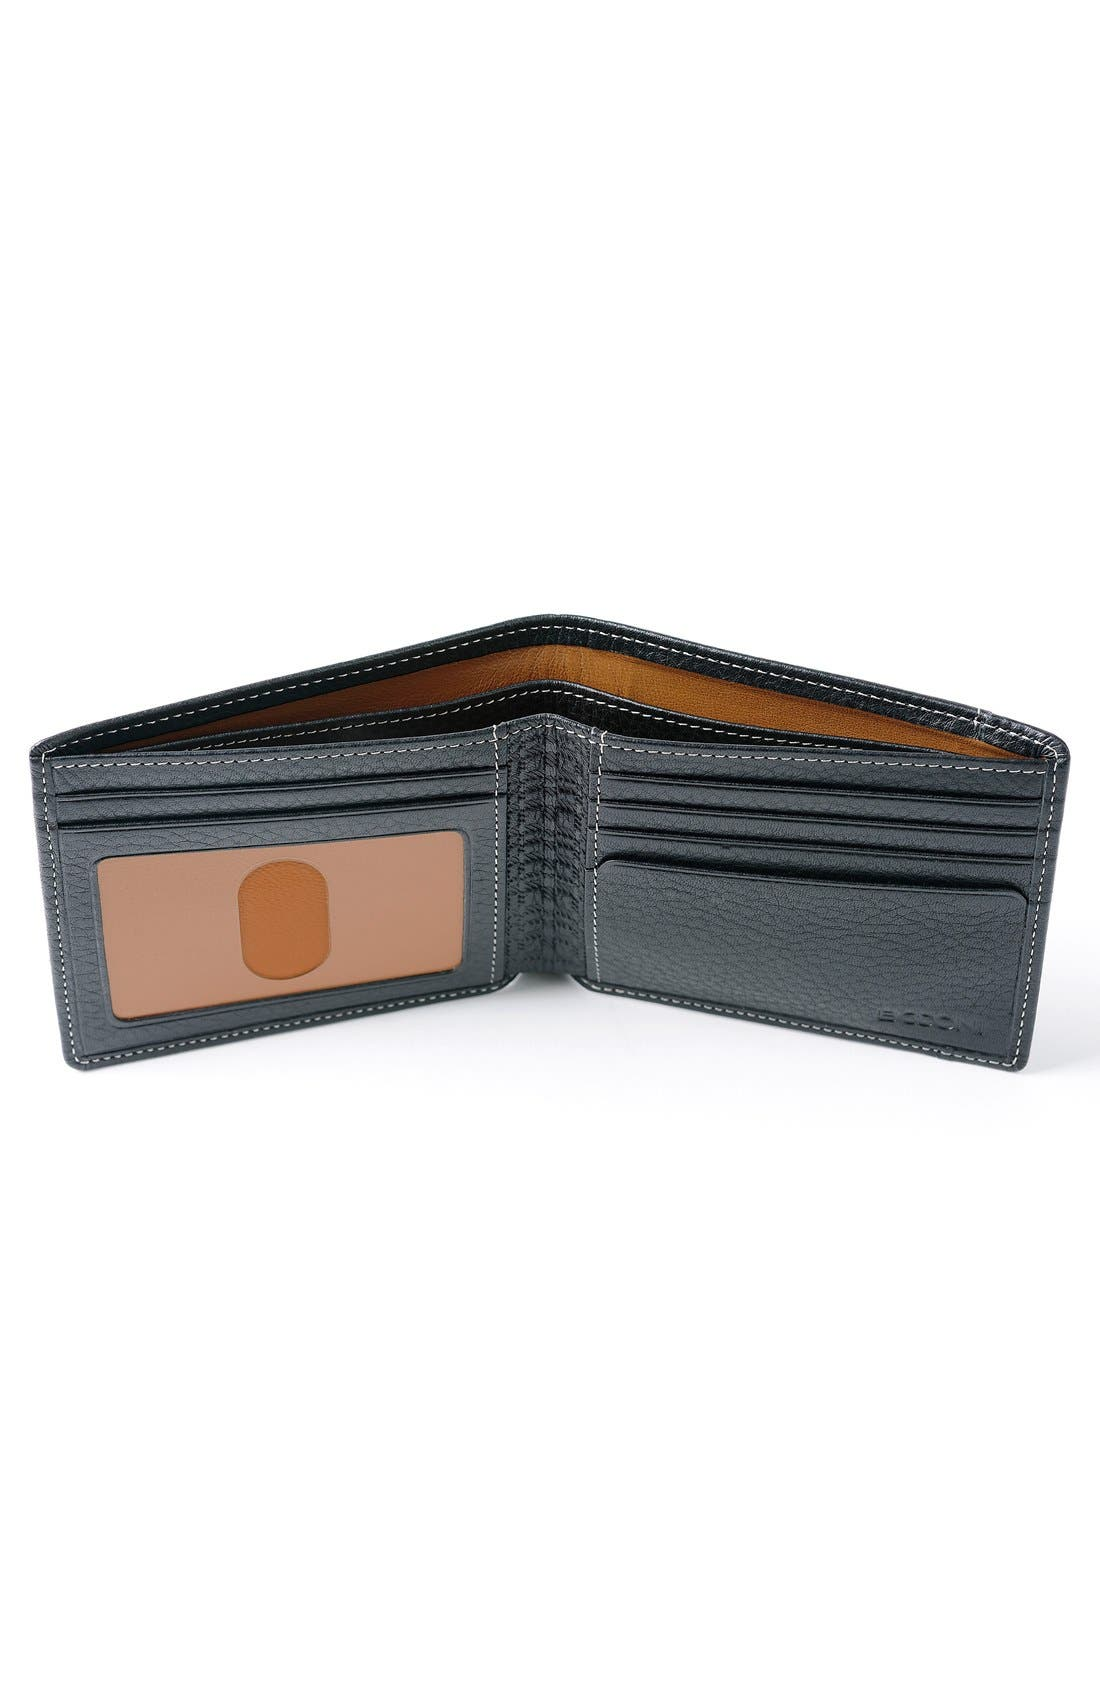 'Tyler' RFID Wallet,                             Alternate thumbnail 4, color,                             BLACK